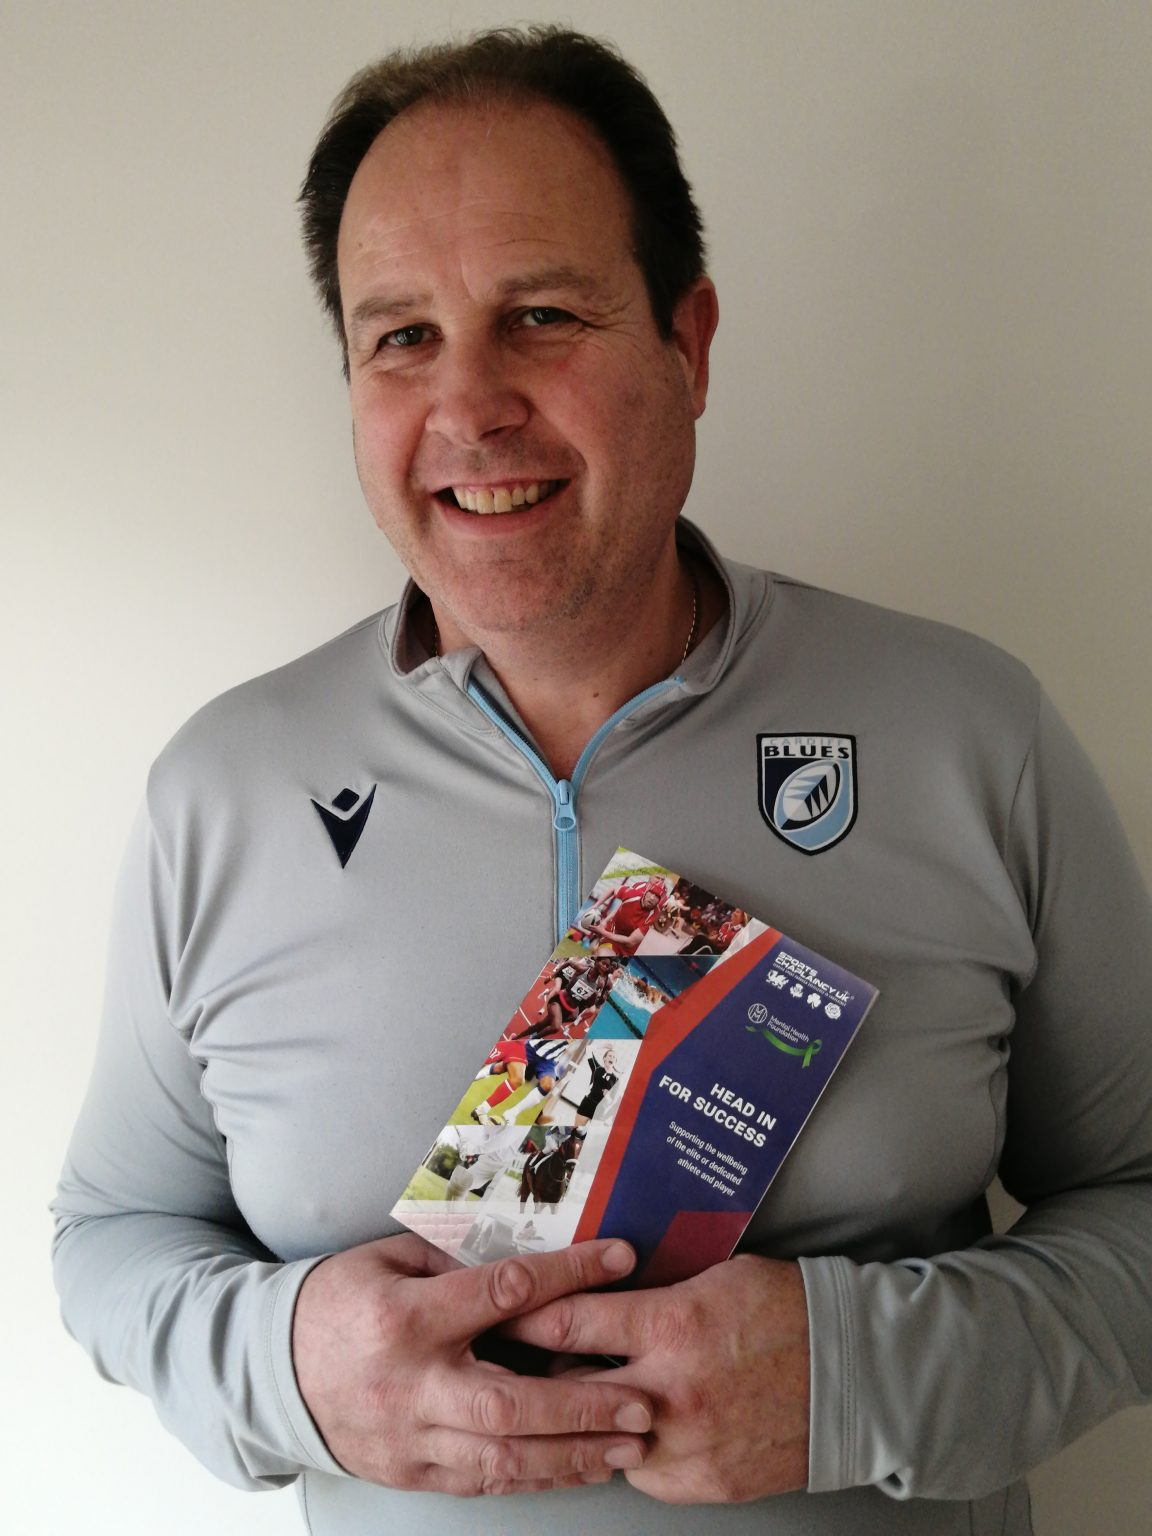 Here to help: with a booklet from Sports Chaplaincy UK